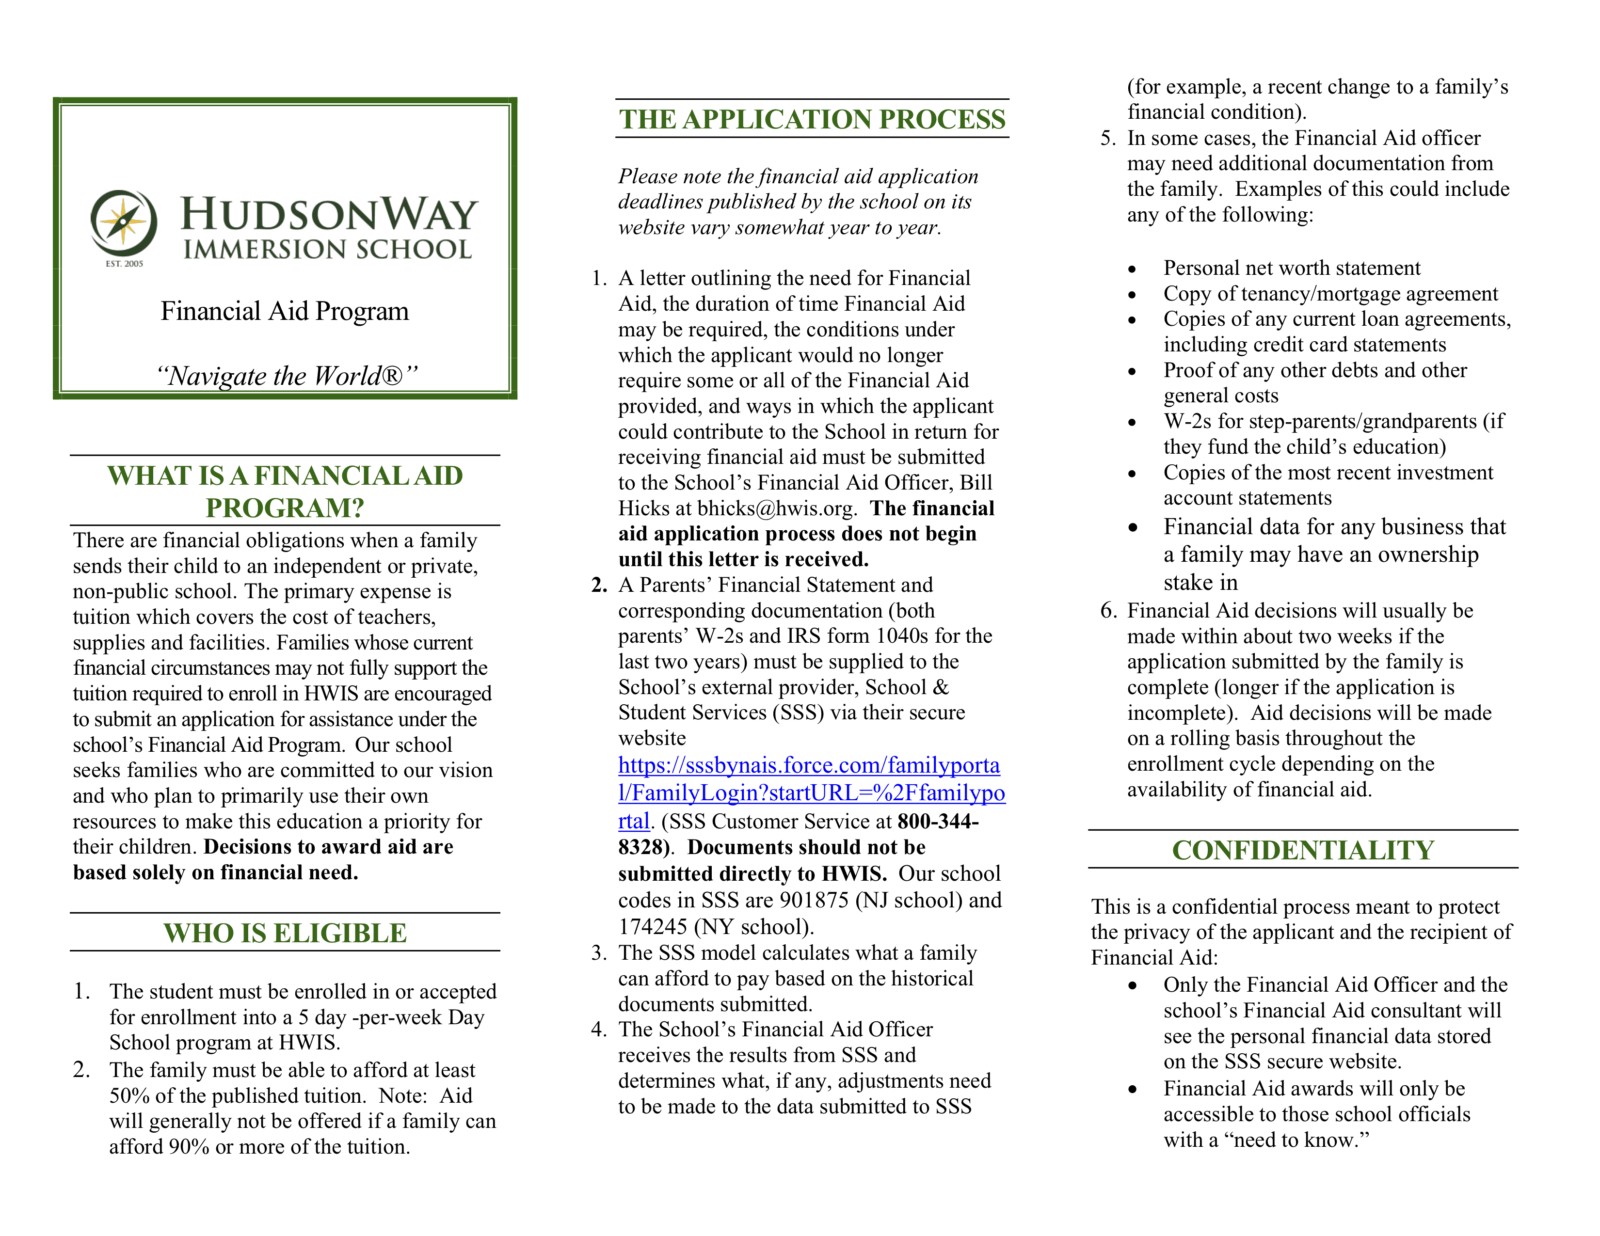 Financial Aid Program | HudsonWay Immersion School